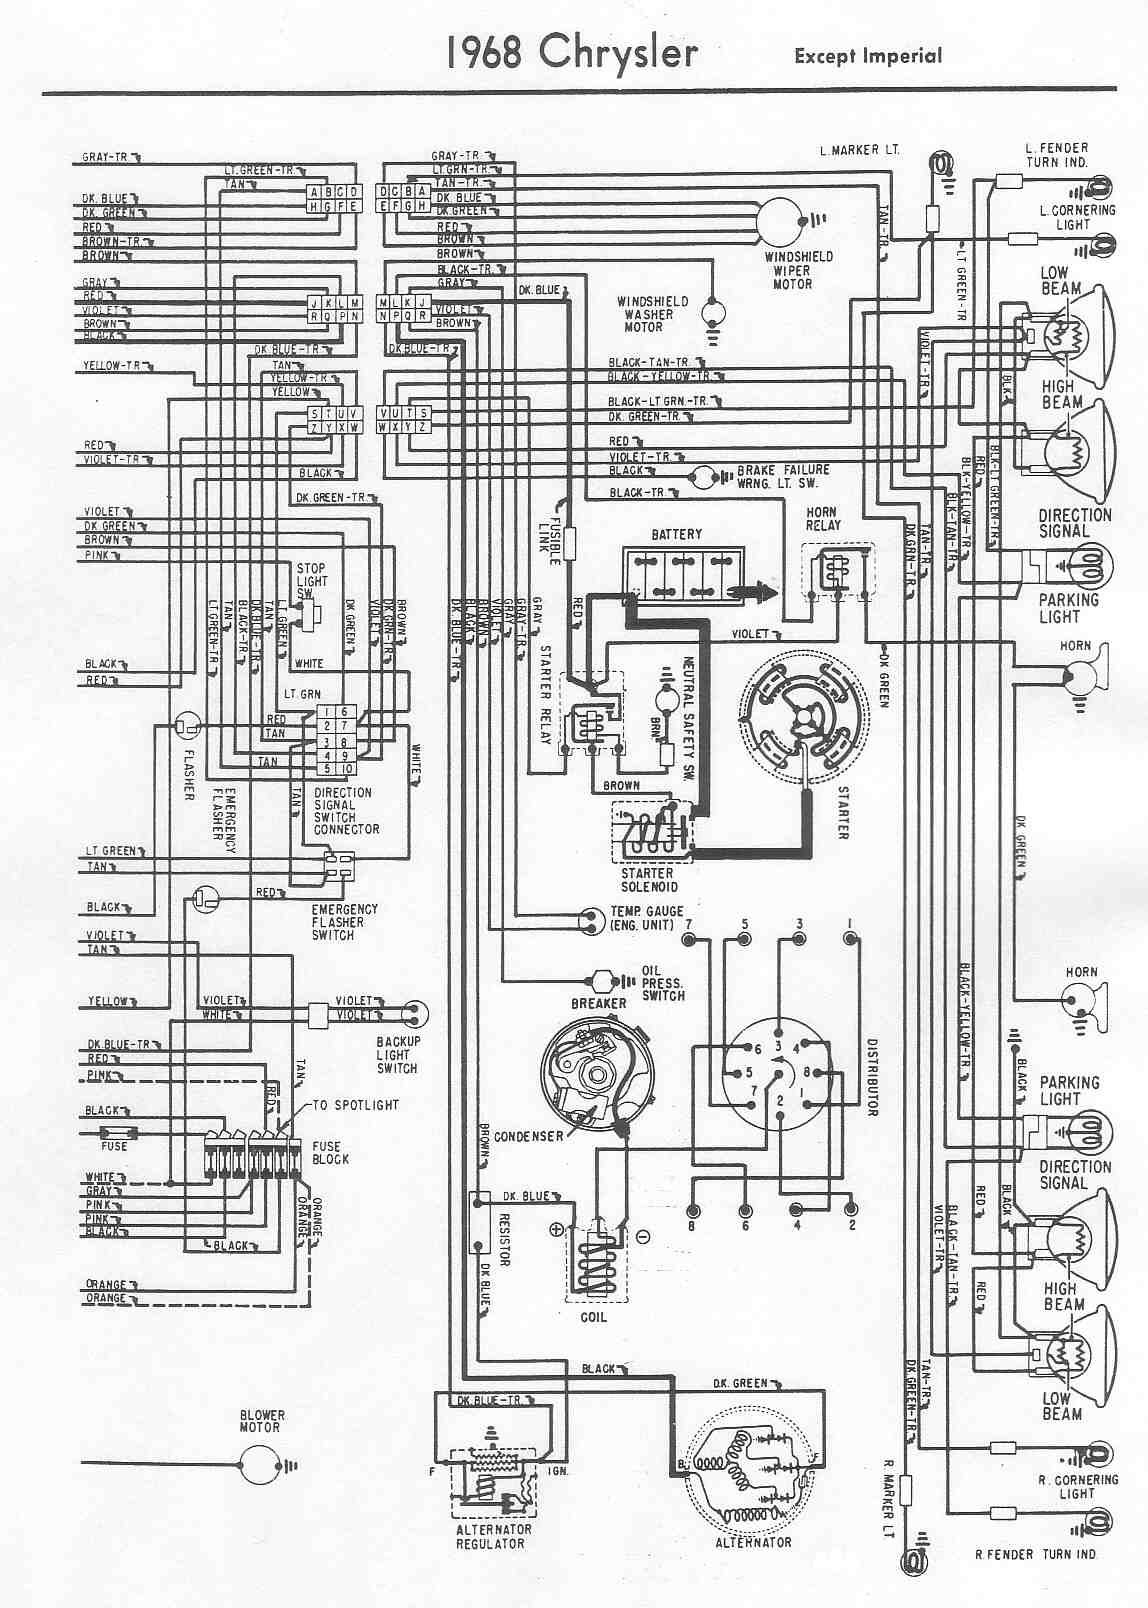 1951 Imperial Wiring Diagram Free Wiring Diagram For You